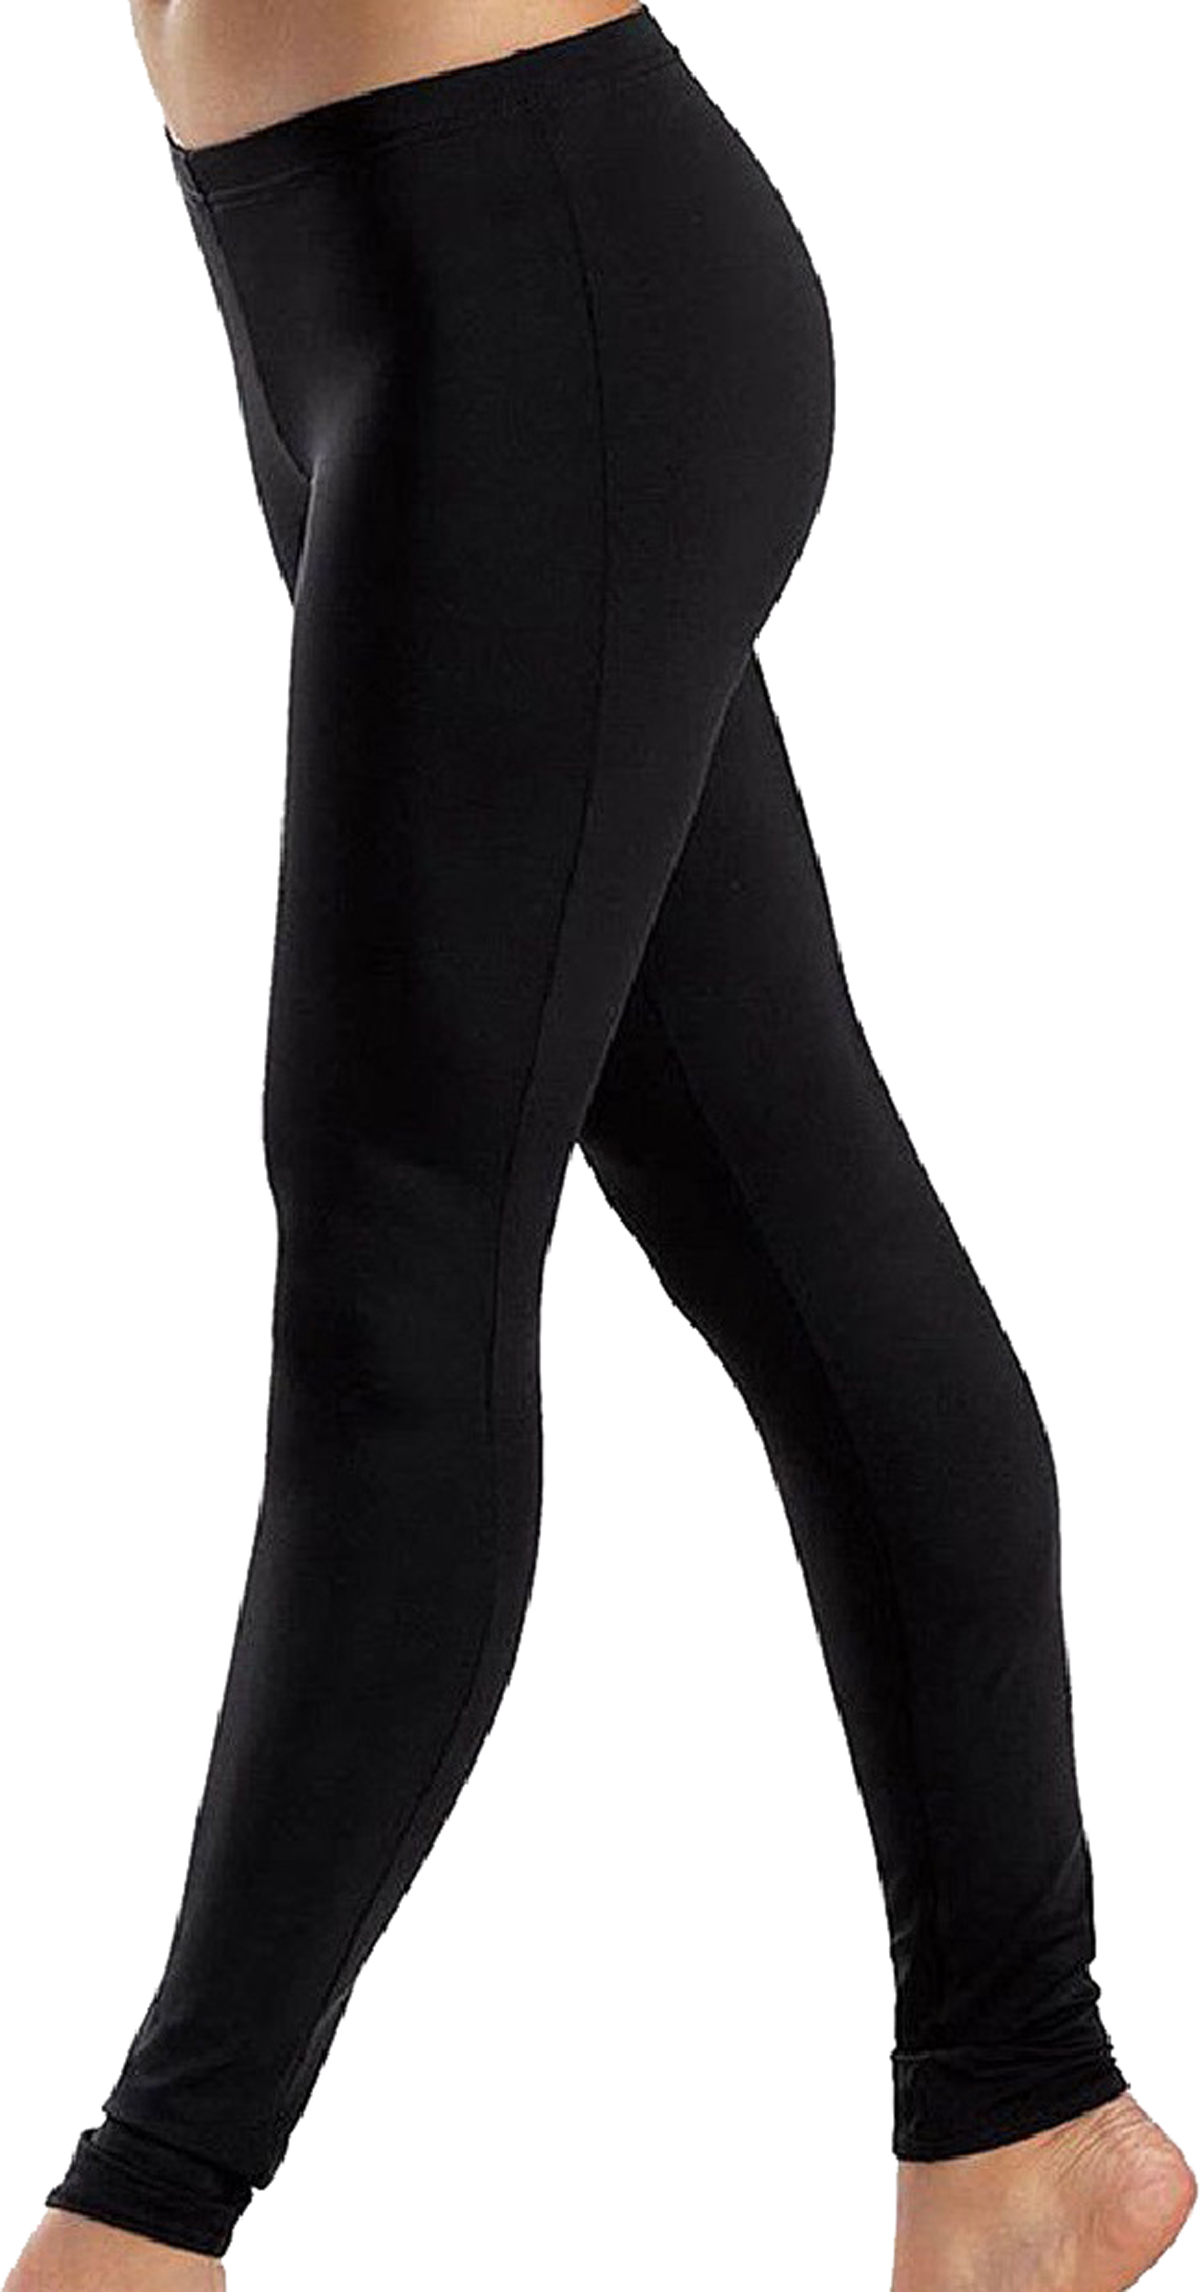 58f3750f818 Details about School Uniform Girls/Ladies Lycra Leggings Sports PE Pants  Only Uniform® UK